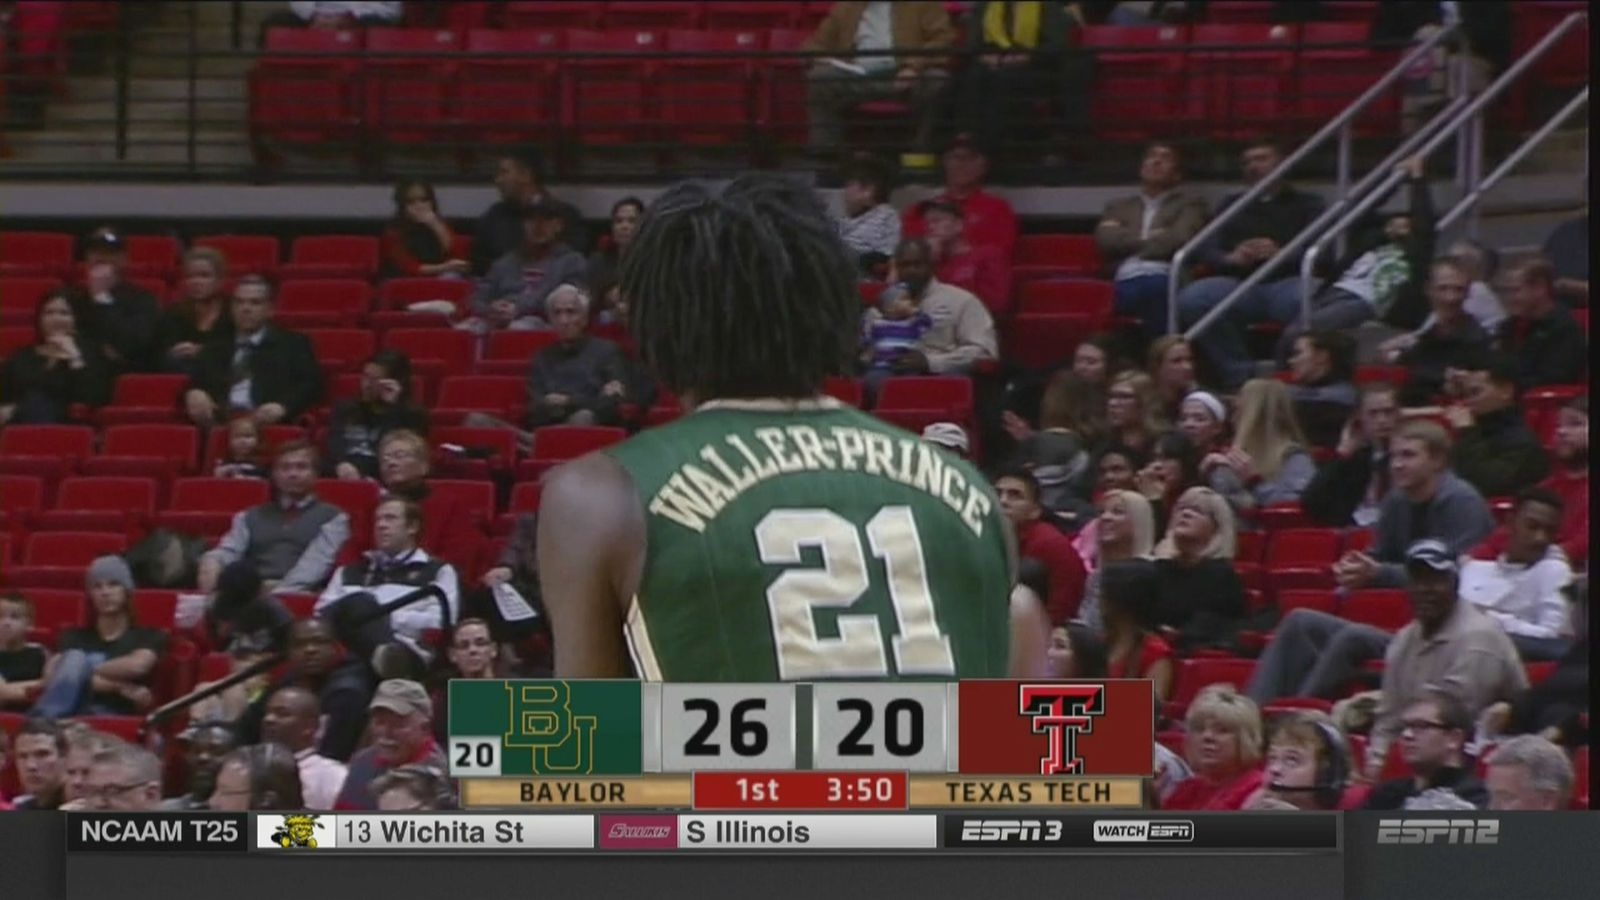 Texas Tech beats Baylor to snap losing streak